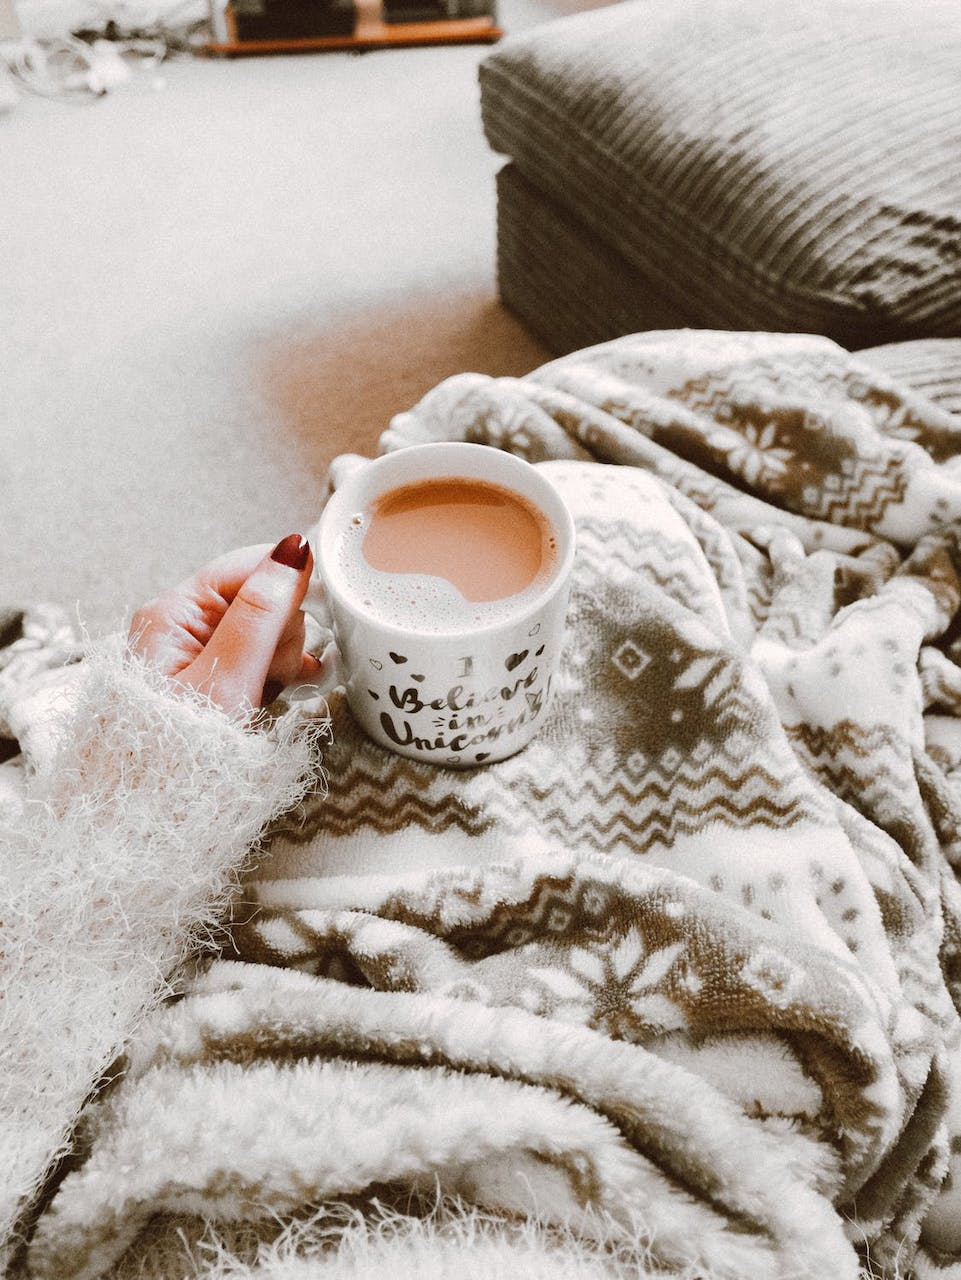 relaxing on couch with coffee and blanket